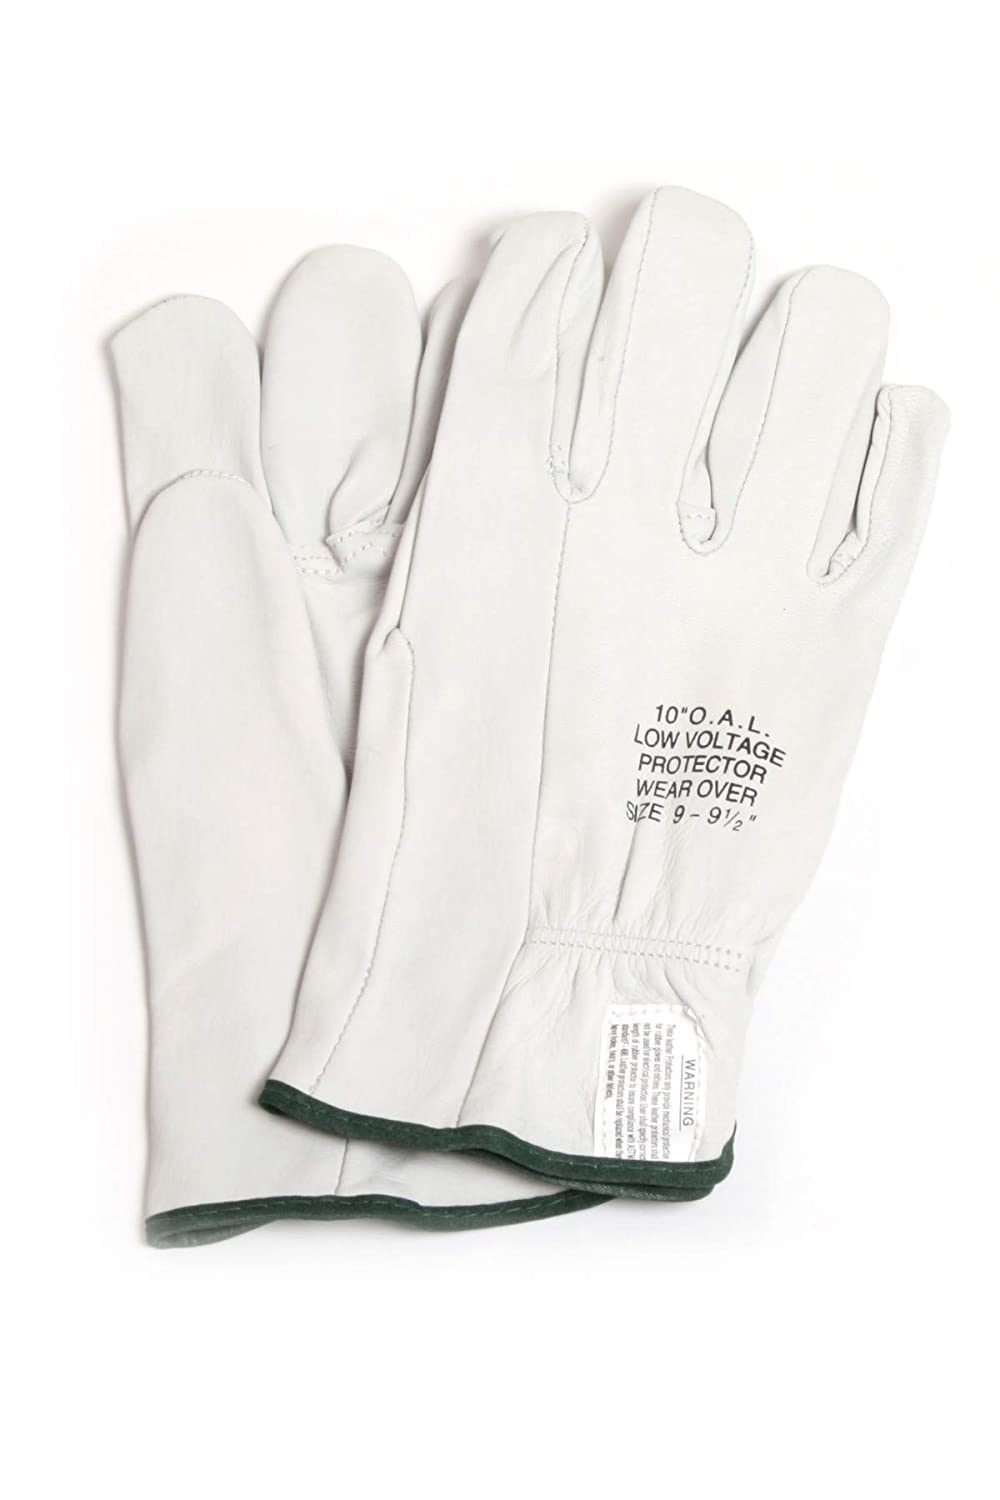 Size 9 Gloves White 10 National Safety Apparel DWH10L9 Leather Protectors